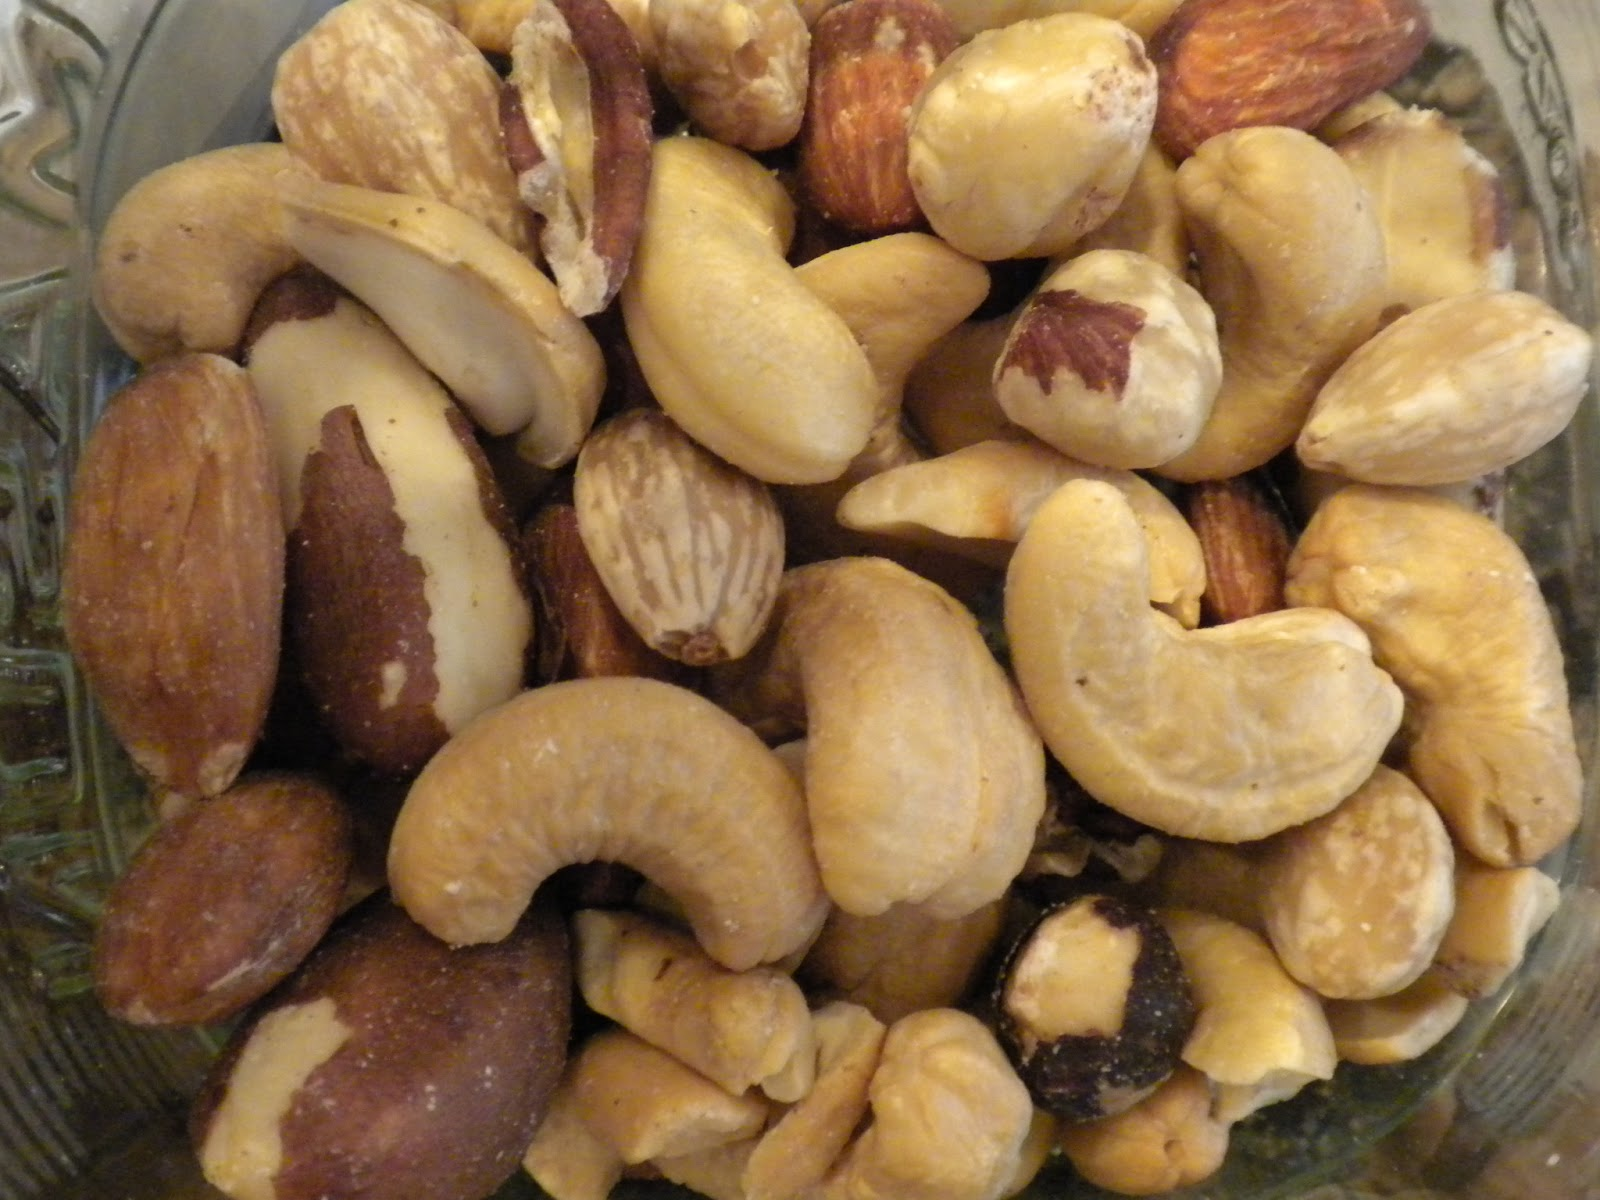 Mixed Nuts for Homemade Nut Butter by Substance of Living